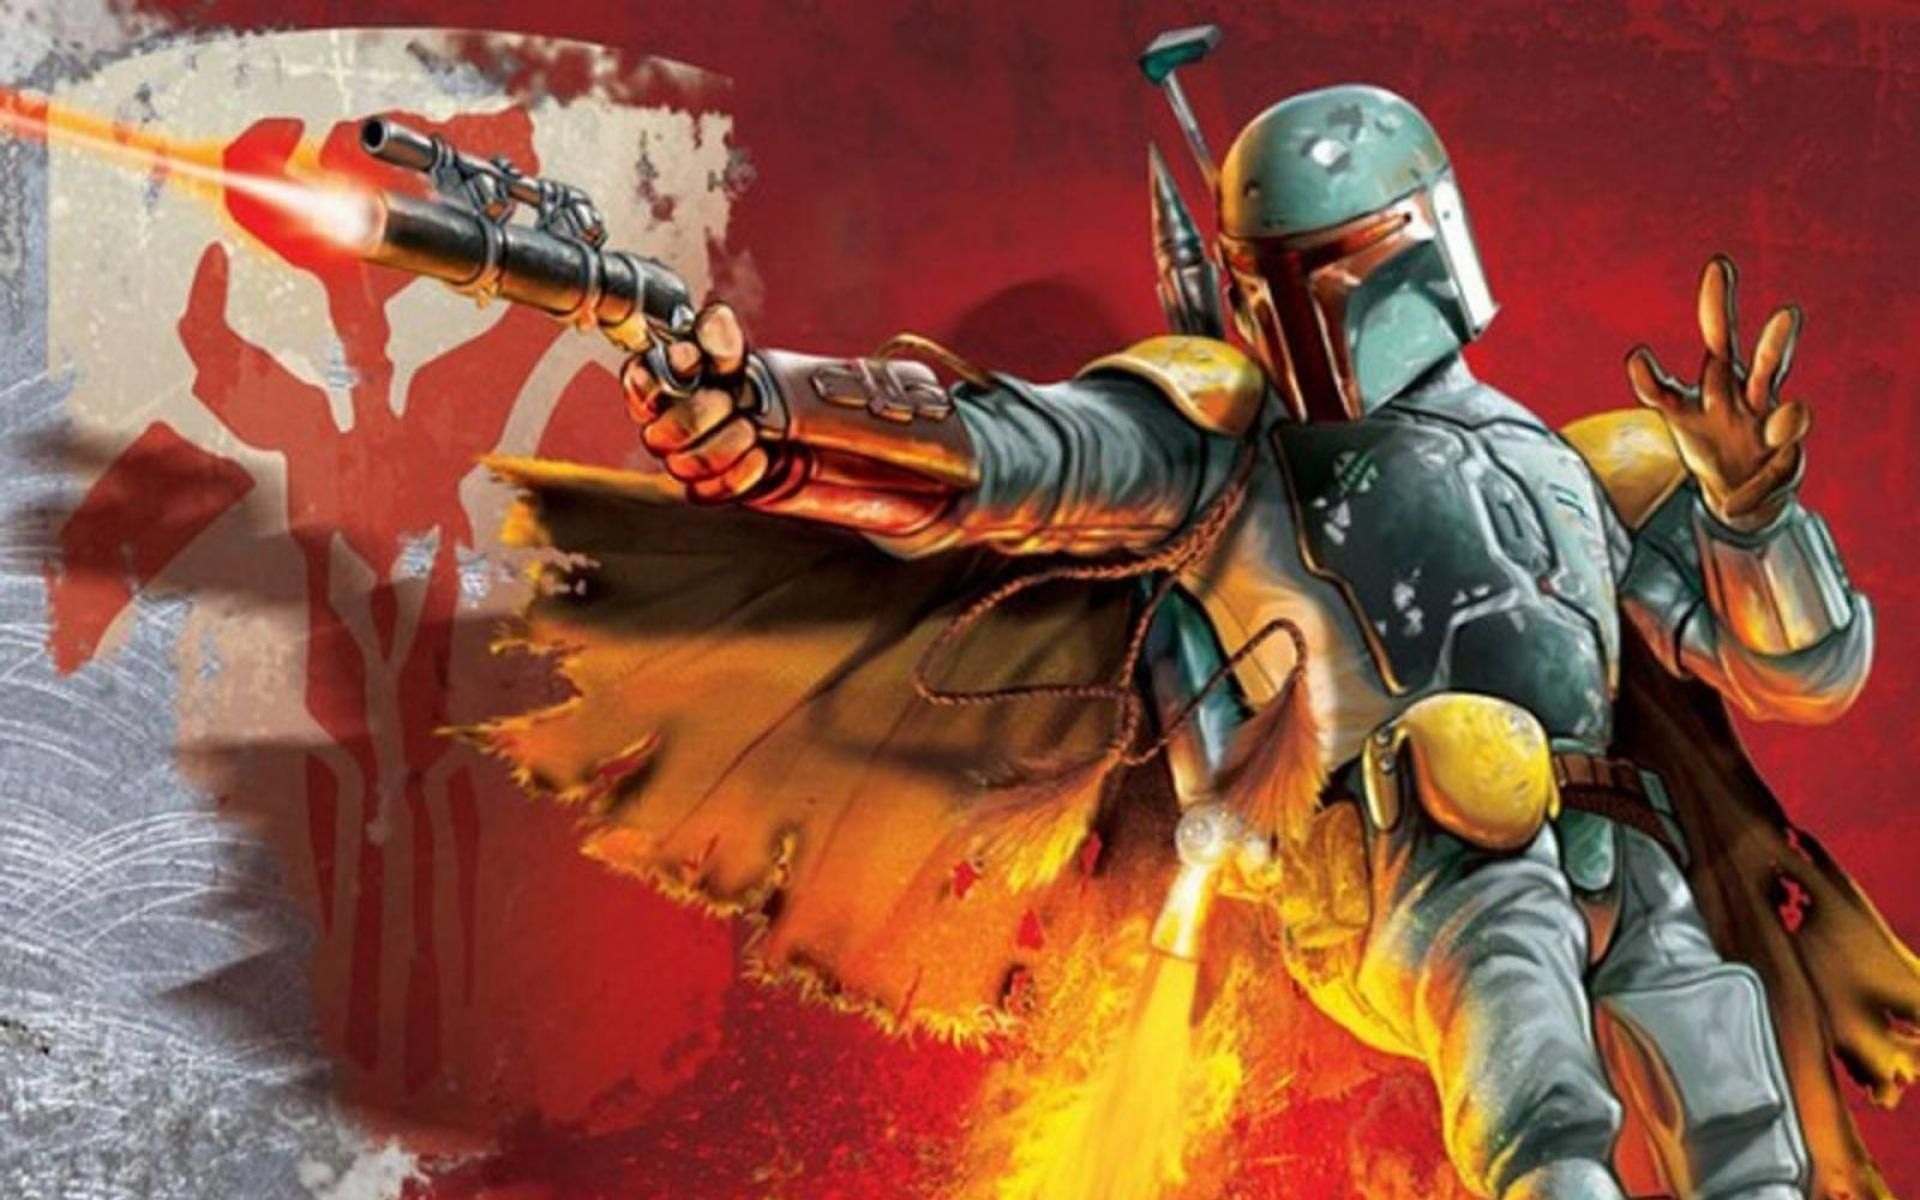 Boba Fett Wallpaper For Mobile Phone Tablet Desktop Computer And Other Devices Hd And 4k Wallpapers Boba Fett Wallpaper Boba Fett Boba